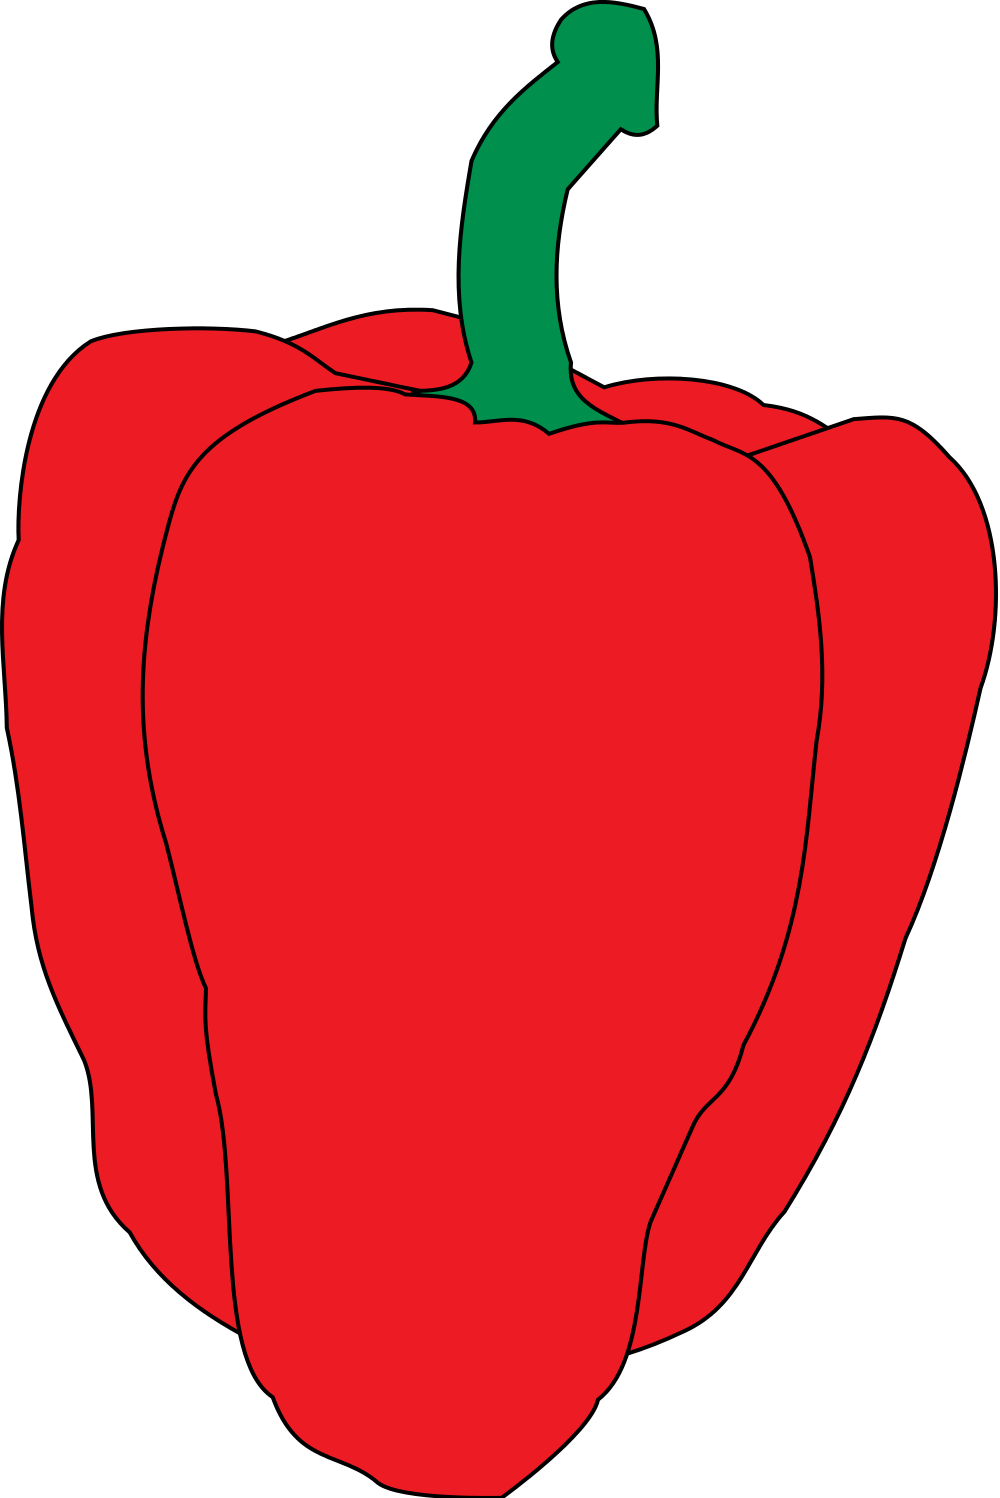 Heart shaped apple clipart clip art transparent stock File:Pimiento.svg - Wikimedia Commons clip art transparent stock